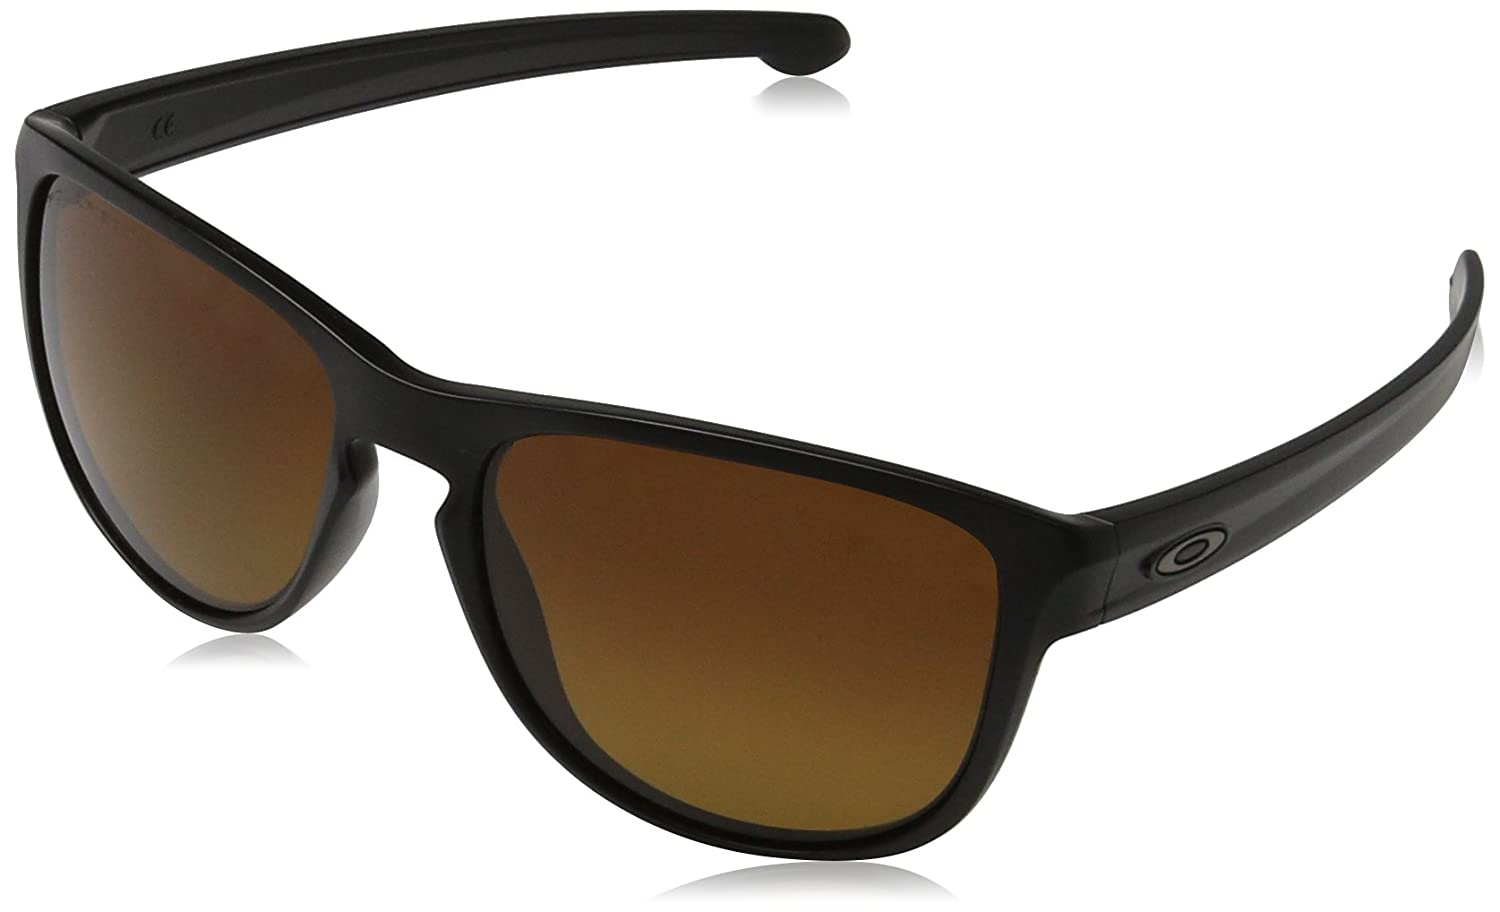 (オークリー) OAKLEY サングラス SLIVER R/スリバーR B01DKJWQBS US One Size-(FREE サイズ)|Matte Black / Brown Gradient Polarized Matte Black / Brown Gradient Polarized US One Size-(FREE サイズ)